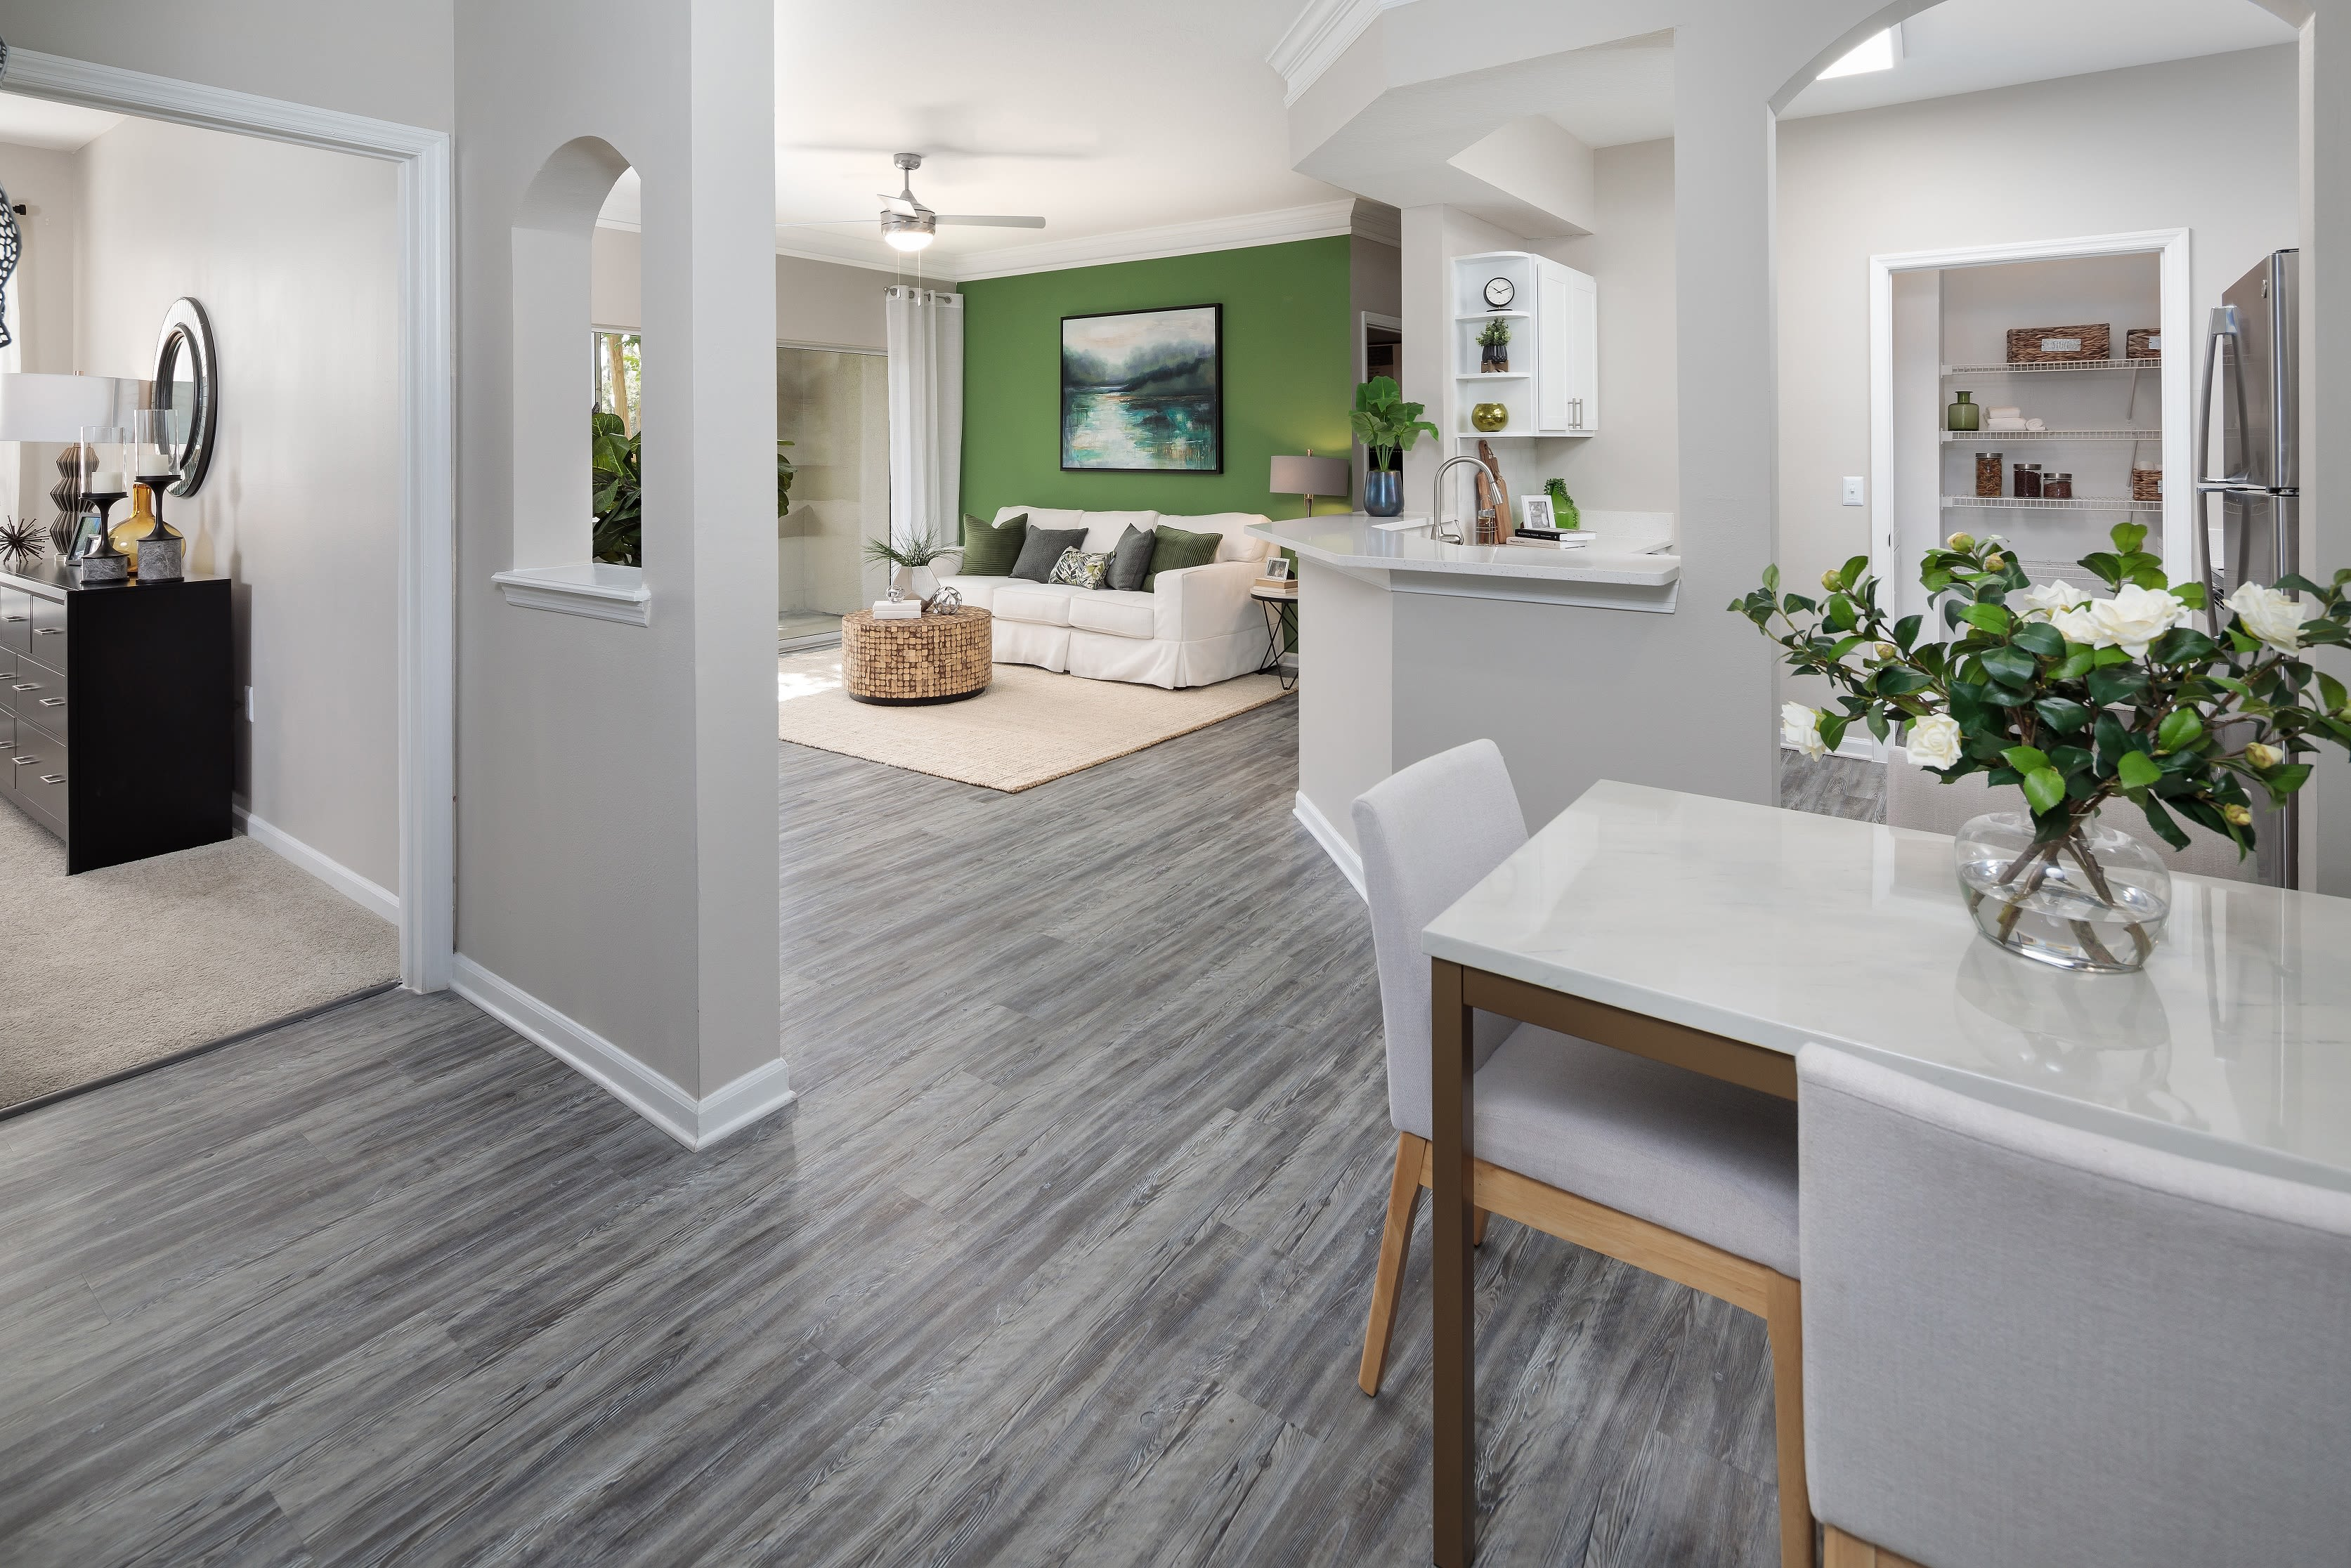 Spacious dining room and kitchen at Eddison at Deerwood Park in Jacksonville, Florida